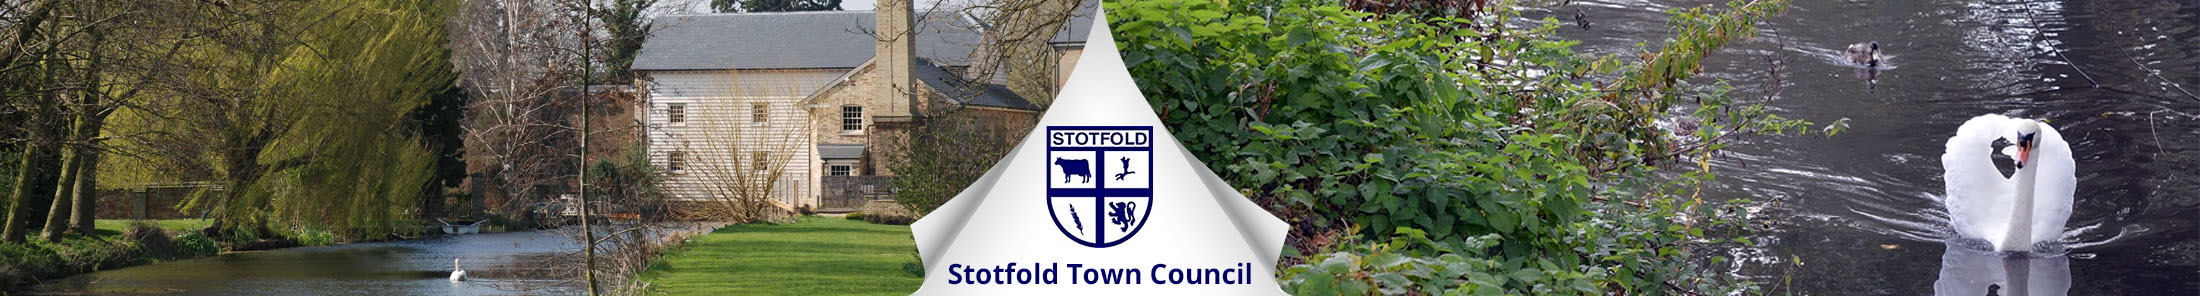 Header Image for Stotfold Town Council